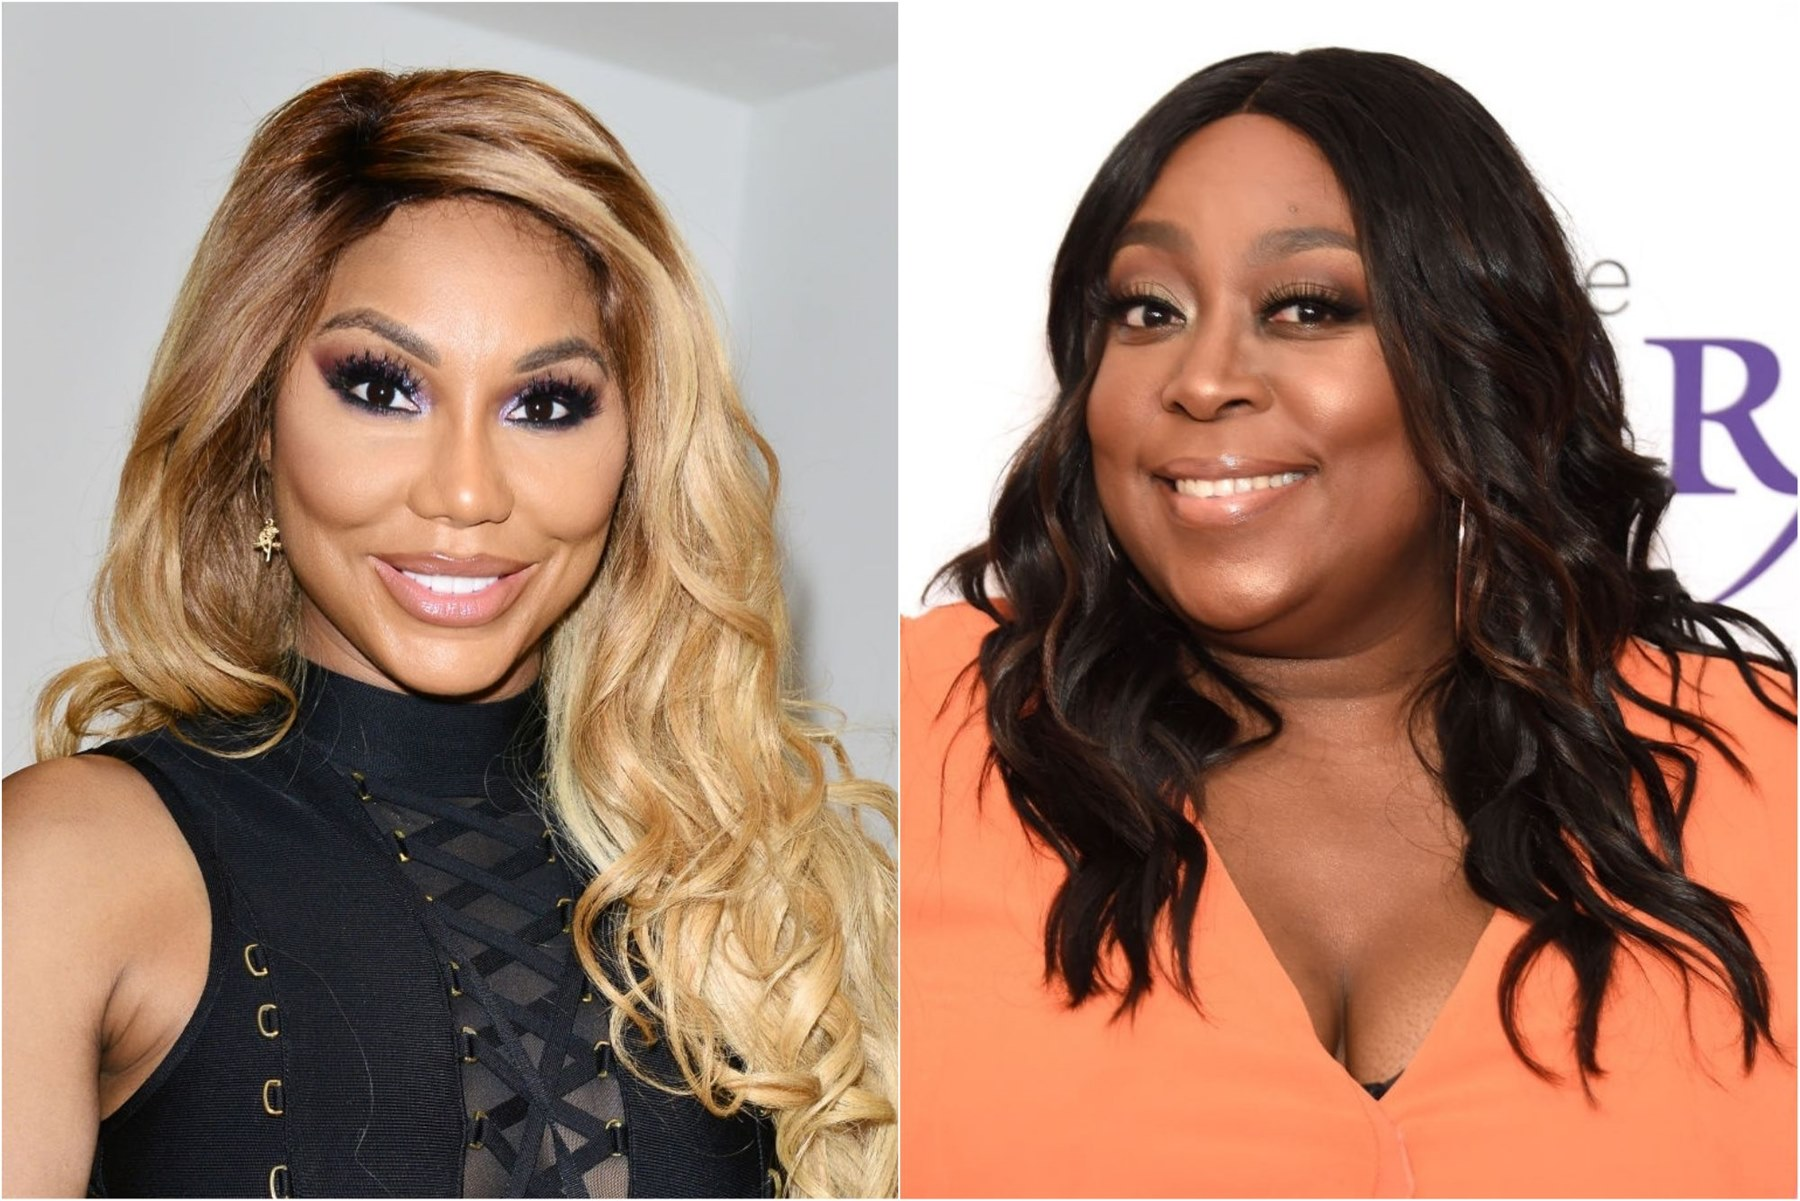 Tamar Braxton Loni Love 'The Real'